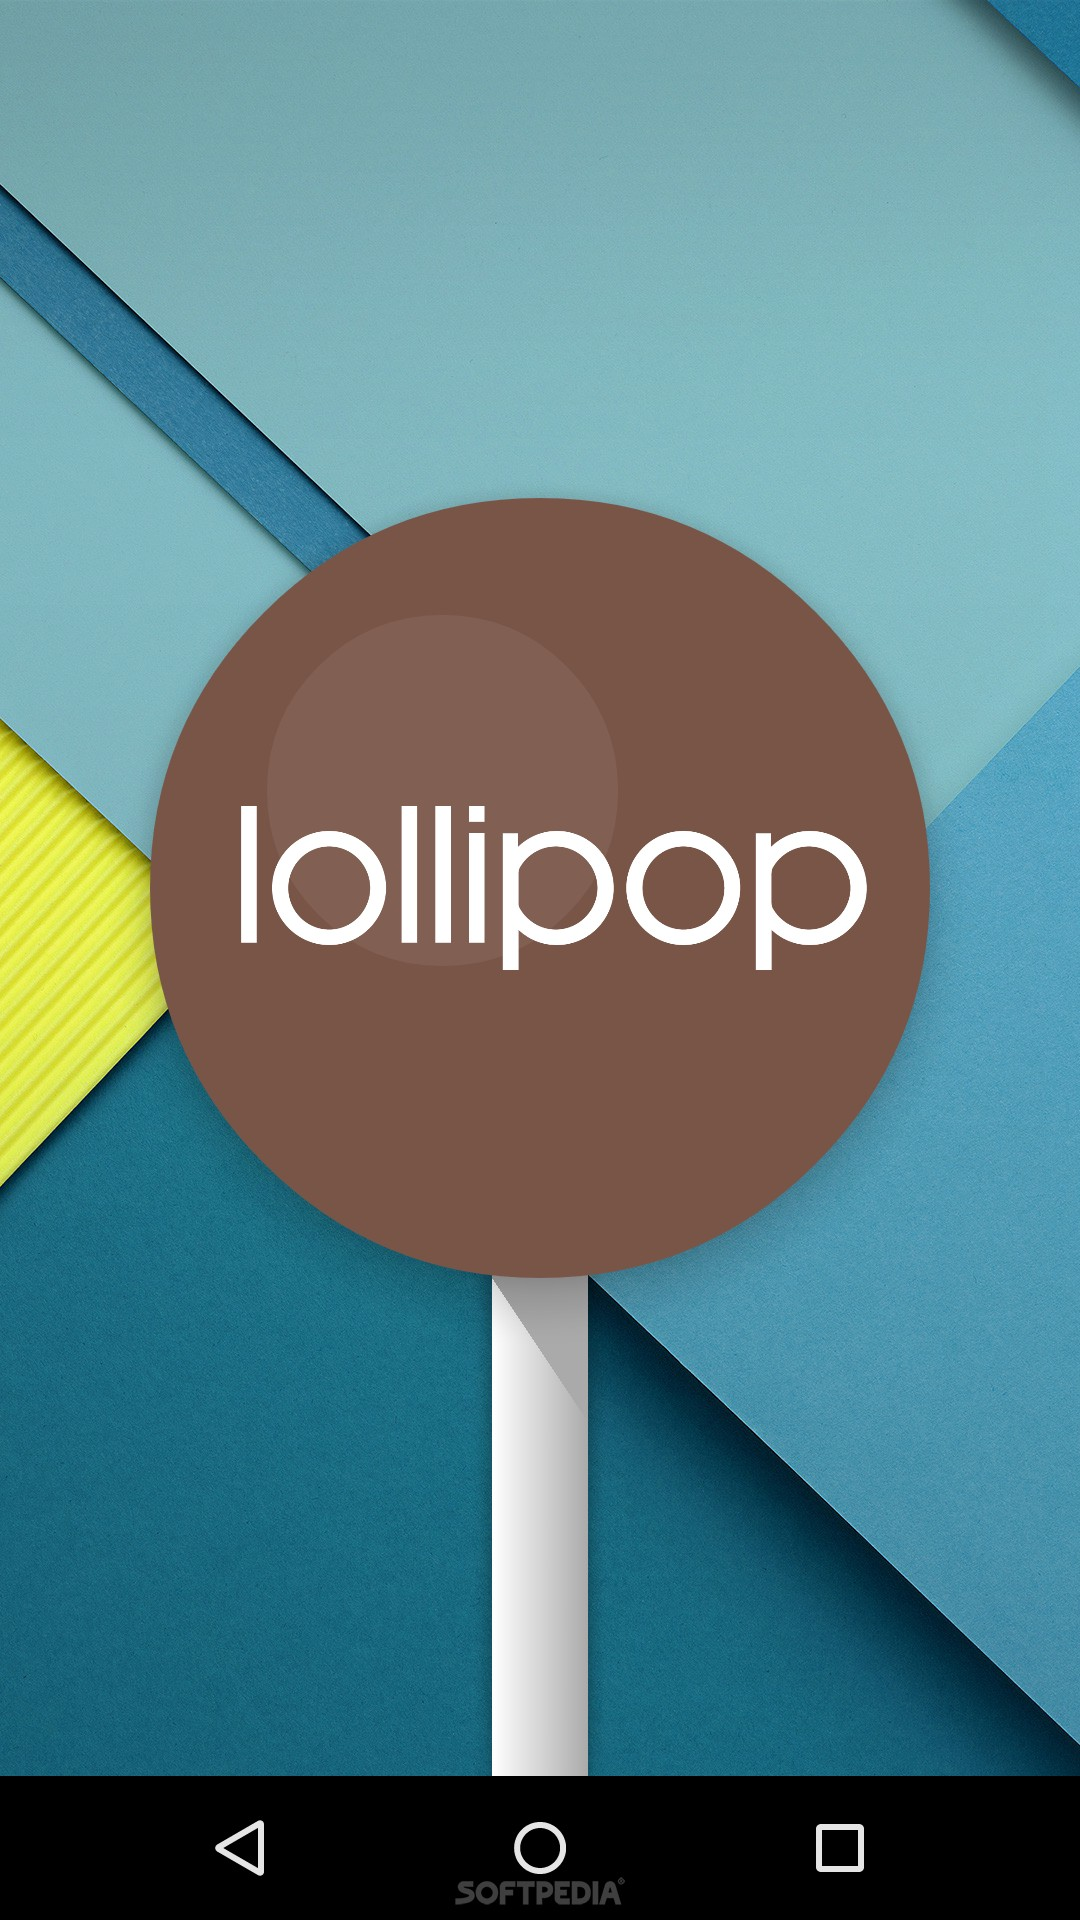 Android 5.0 Lollipop: Final Version In The Test